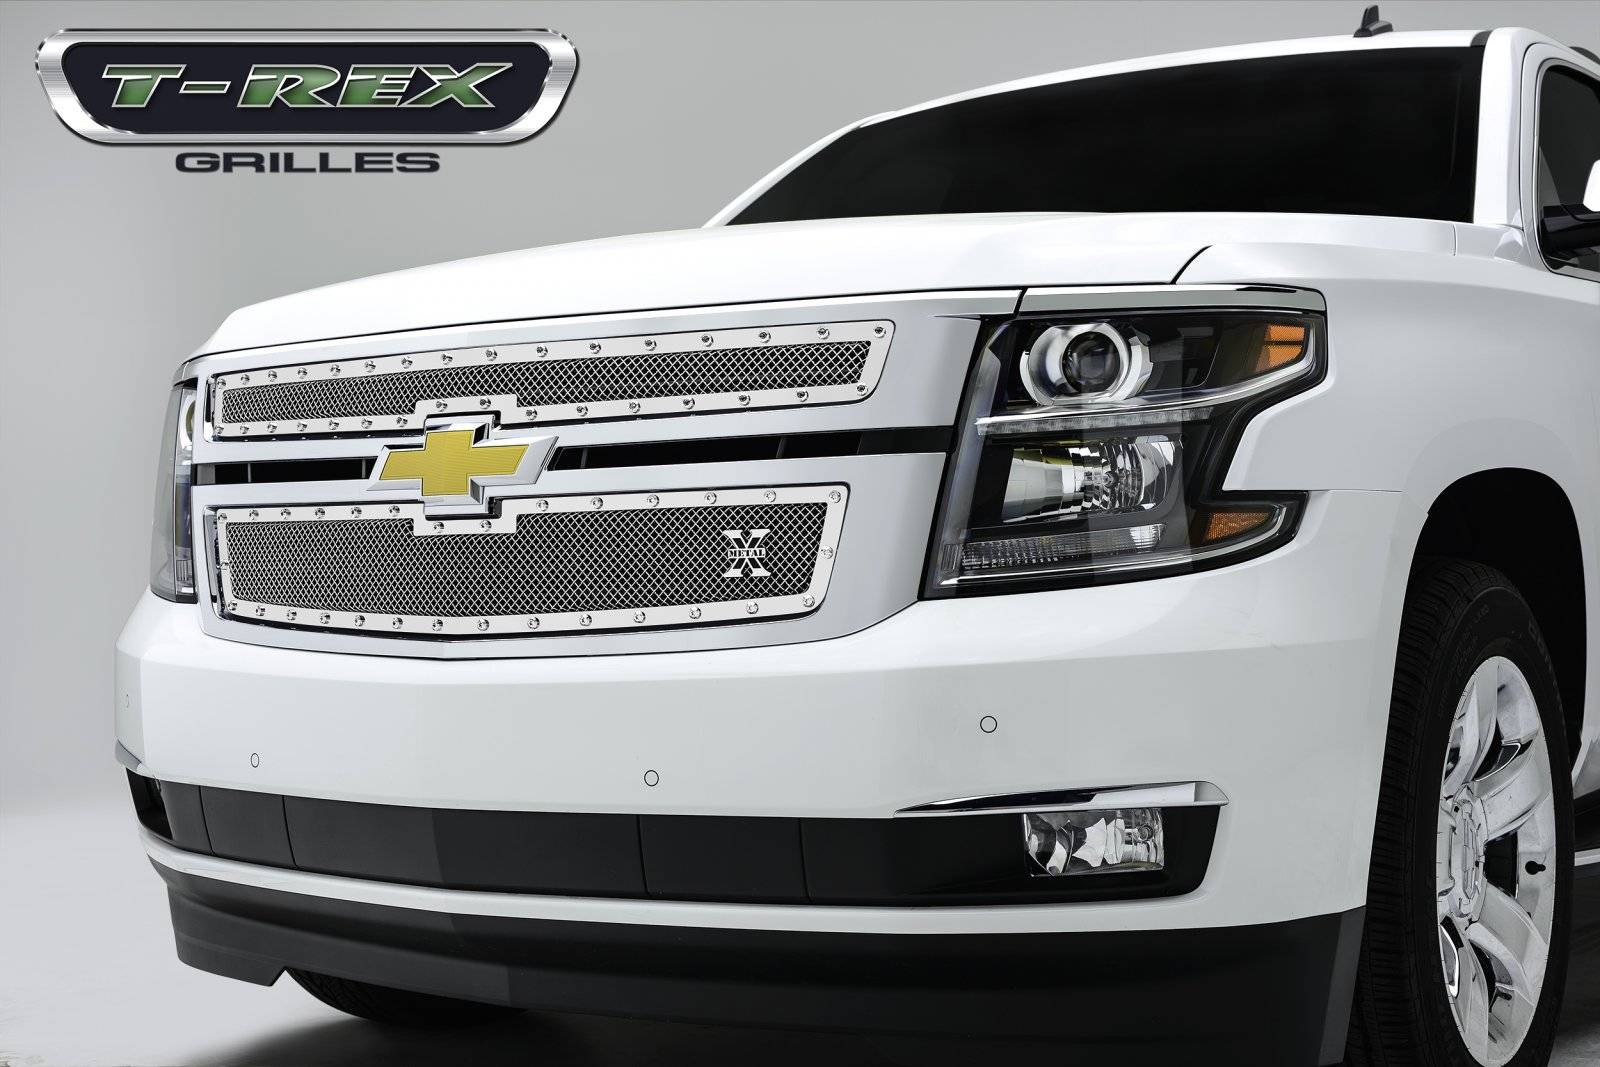 Chevrolet Suburban, Tahoe X-METAL Series - Studded Main Grille - Polished SS - 2 Pc Style - Pt # 6710550